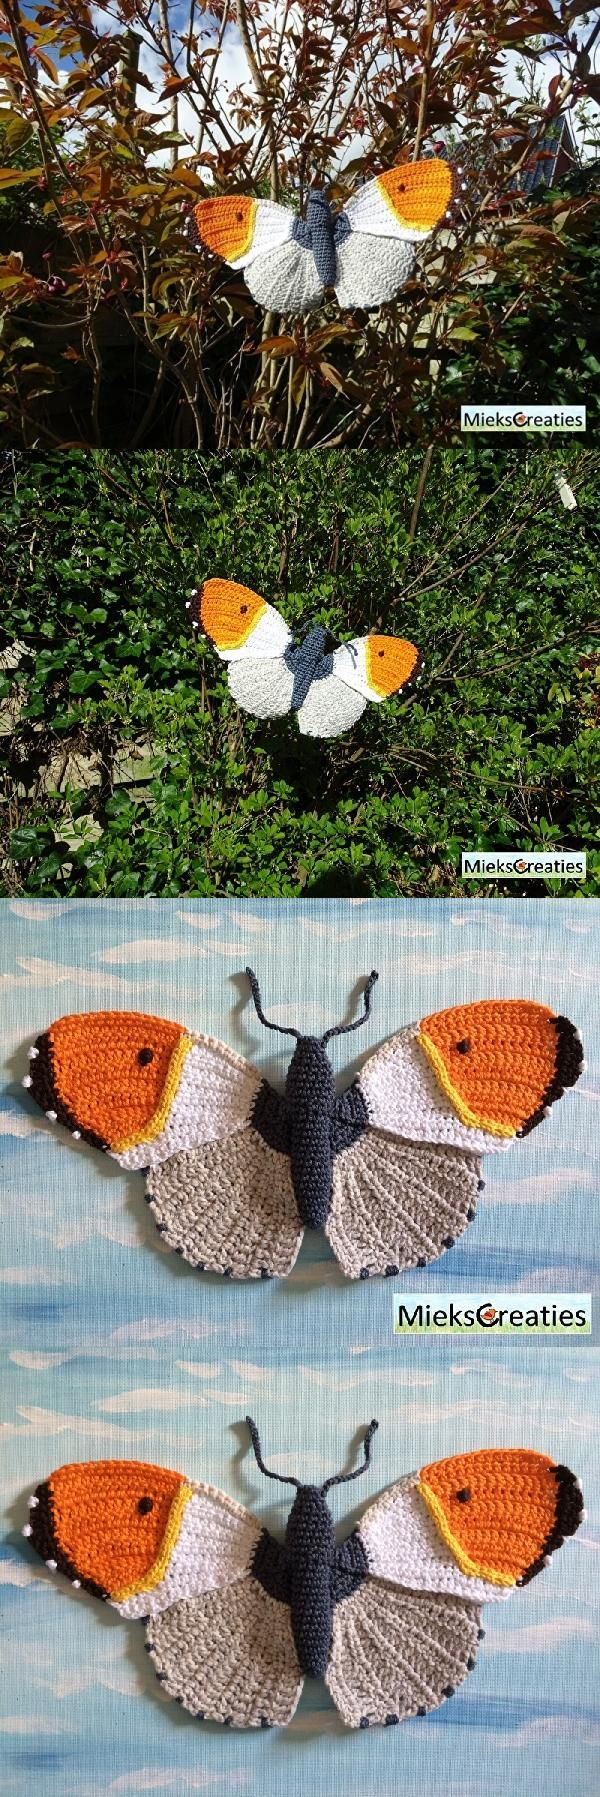 Orange Tip Butterfly Amigurumi Pattern